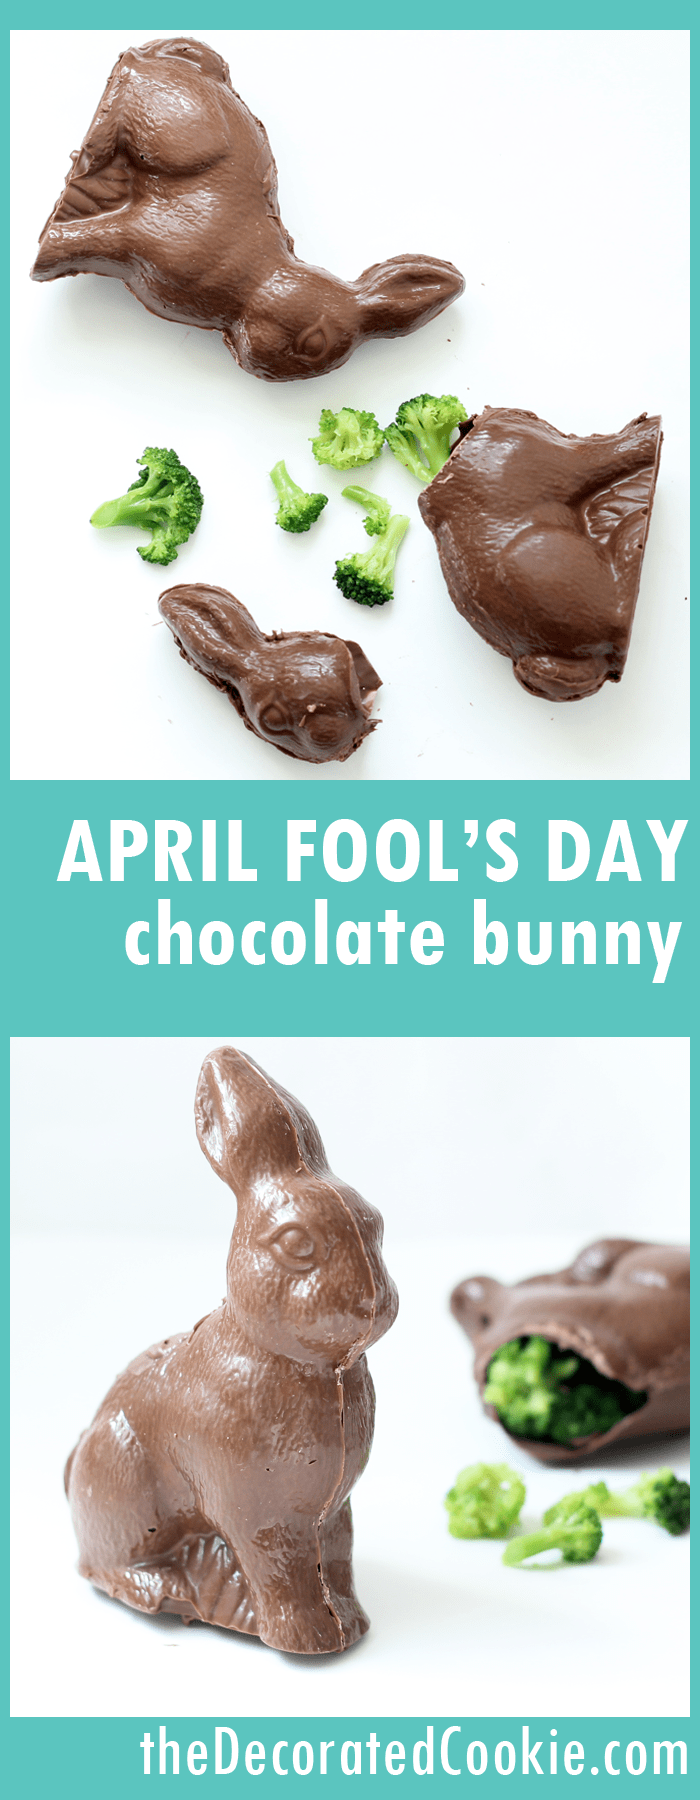 April Fool's Day chocolate bunny trick -- filled with broccoli